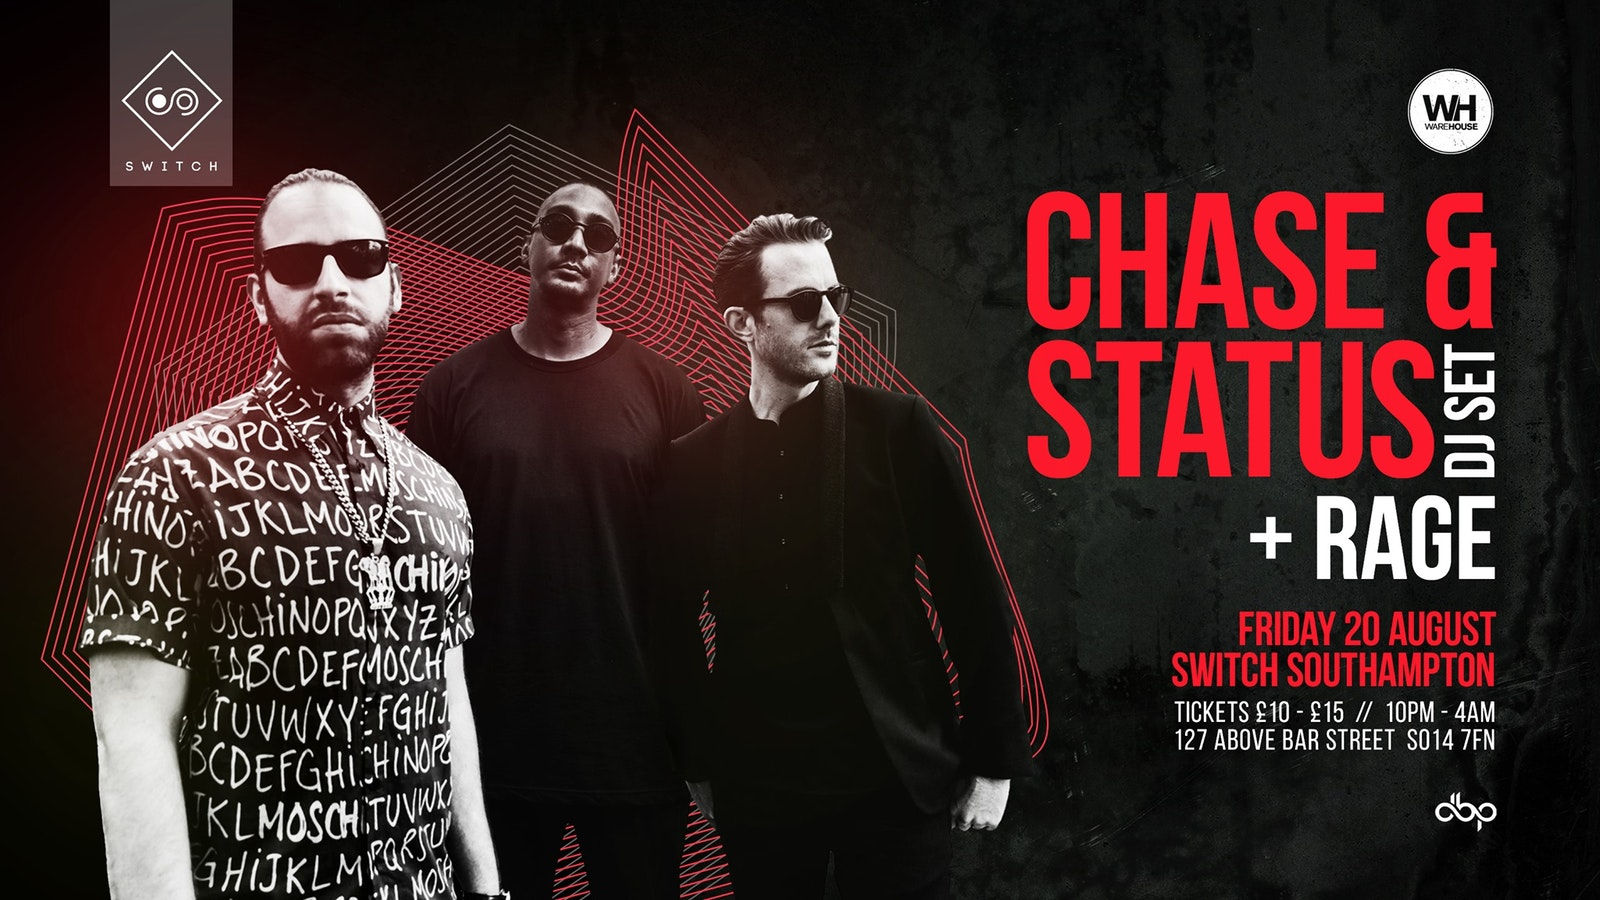 Chase & Status x Friday 20th August